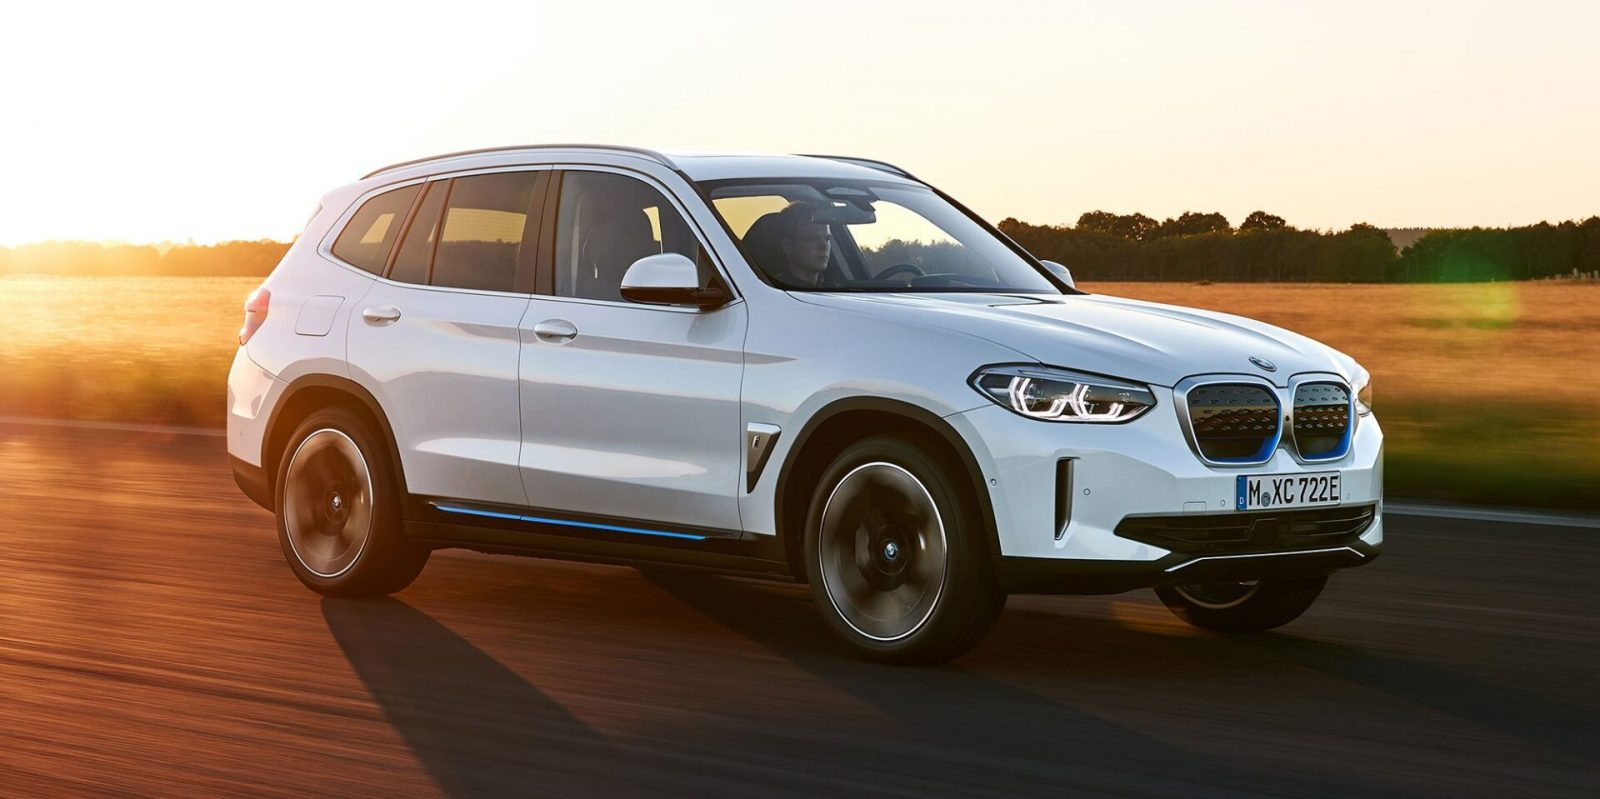 BMW unveils electric iX3 SUV, with big claims about more power, range, and space